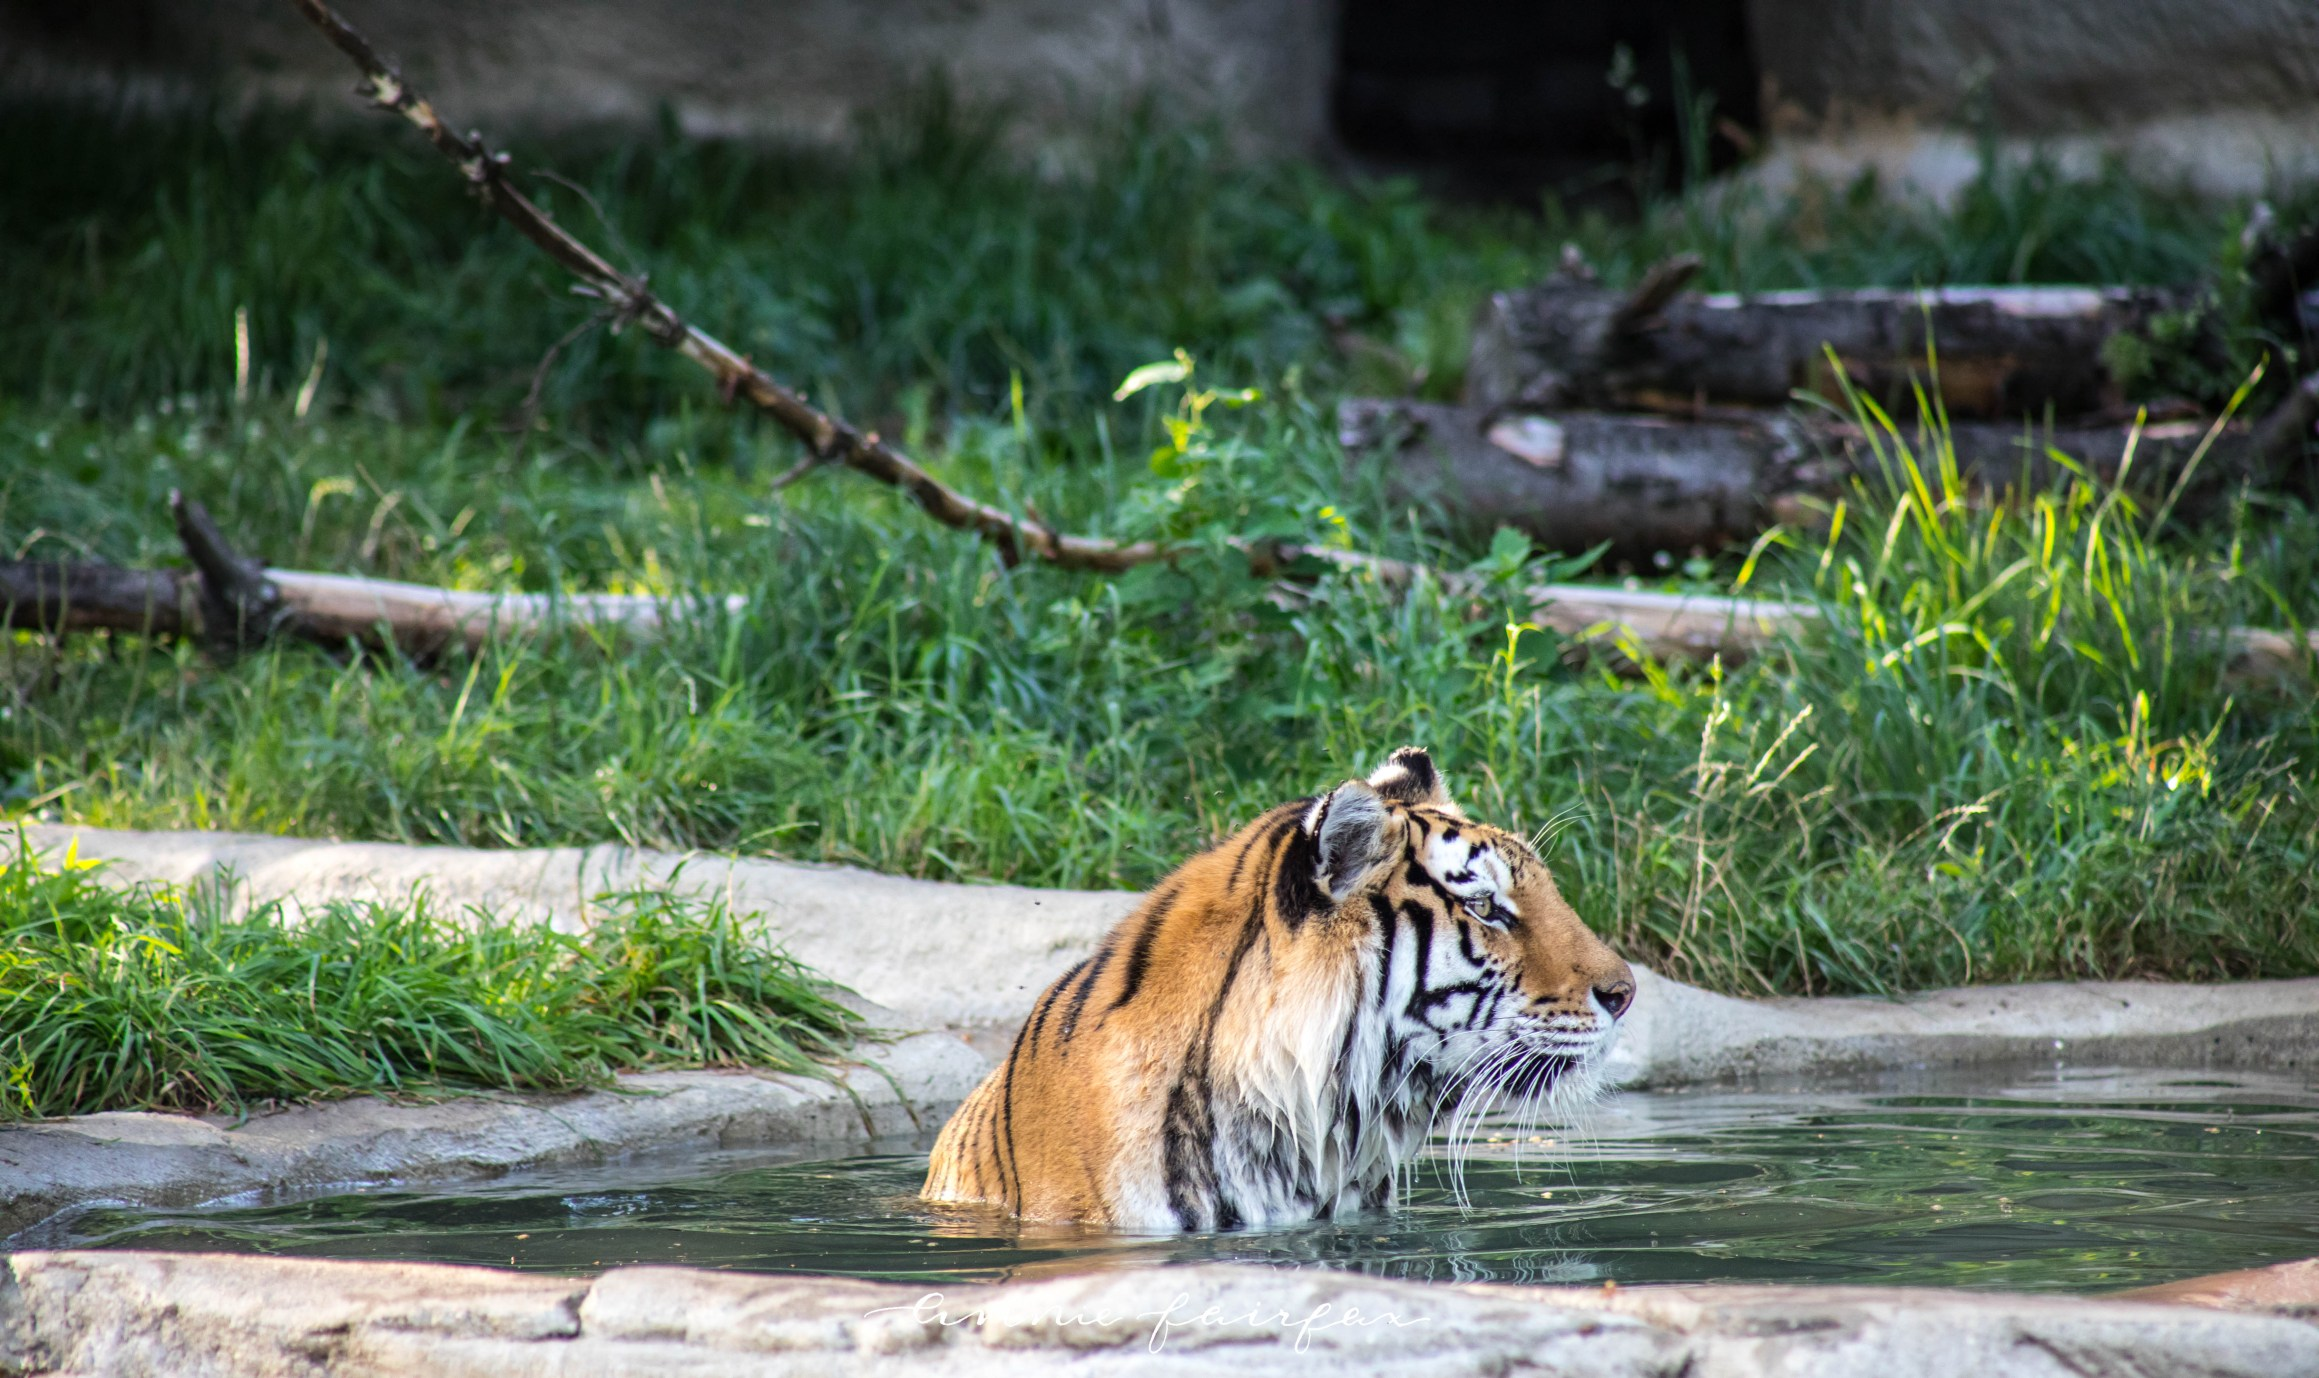 Tiger Emerges from Pool